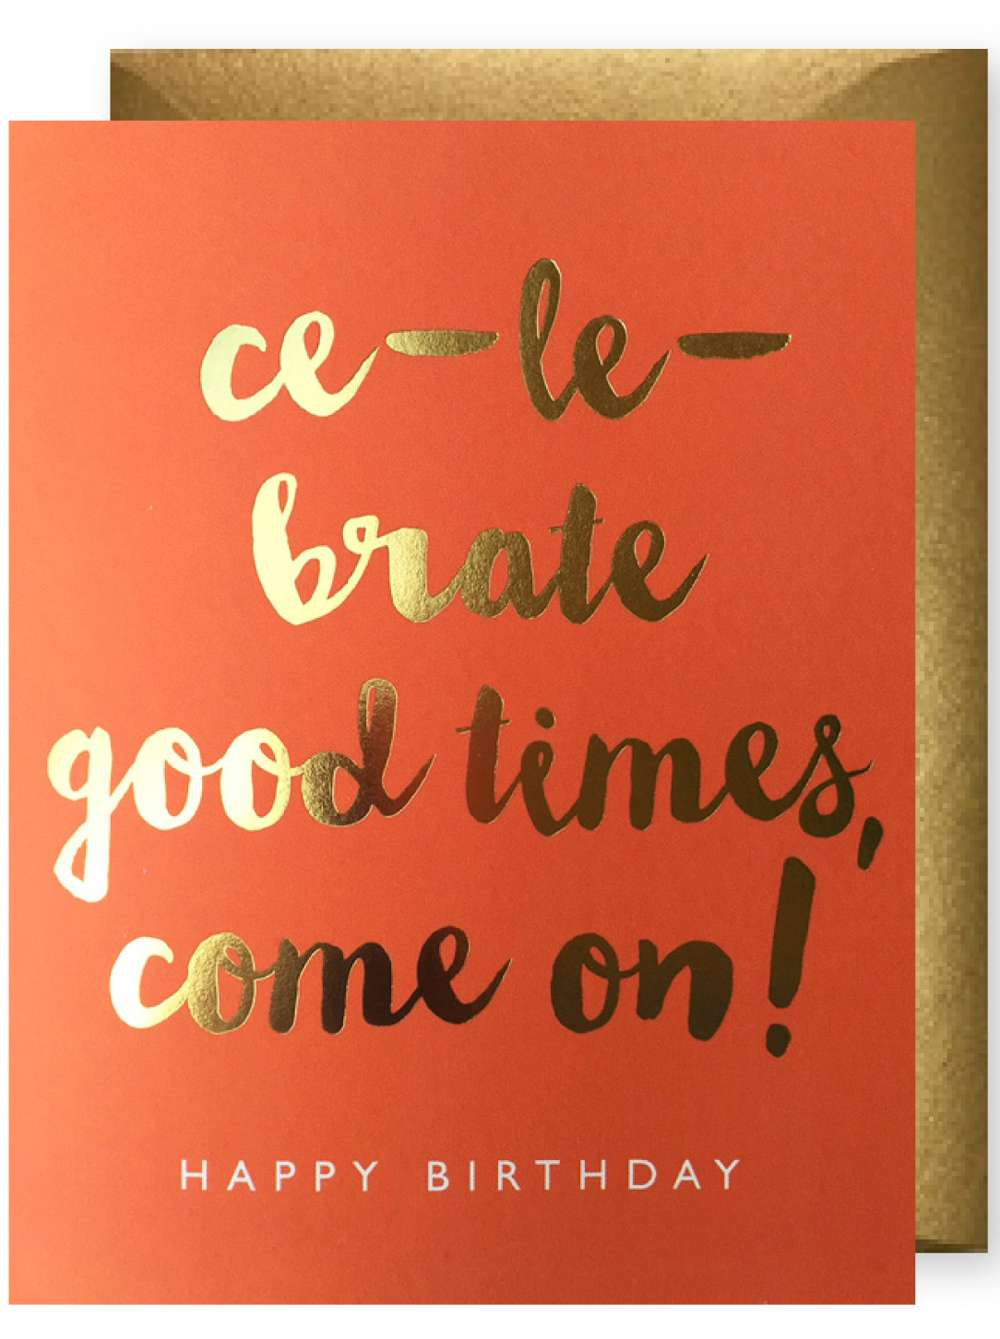 CE-LE-BRATE GOOD TIMES CARD Thumbnail